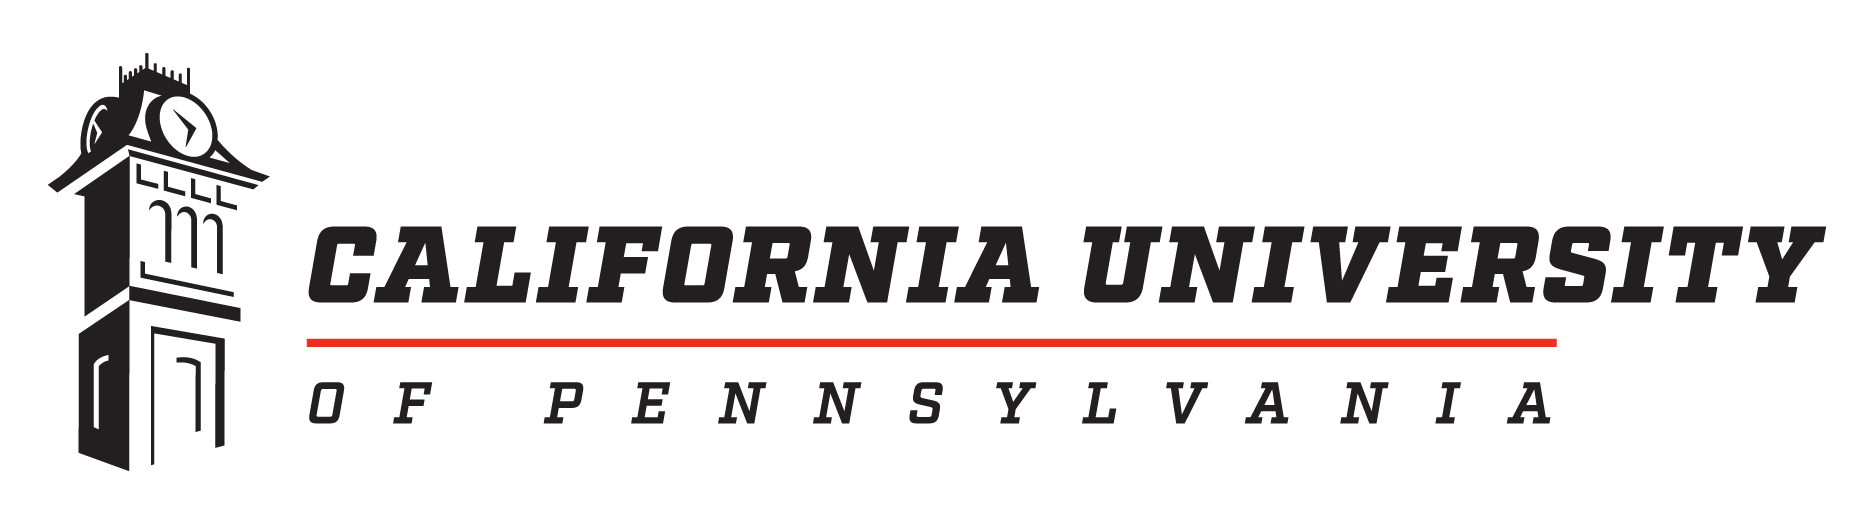 California University of Pennsylvania – 40 Most Affordable Online Master's STEAM Teaching